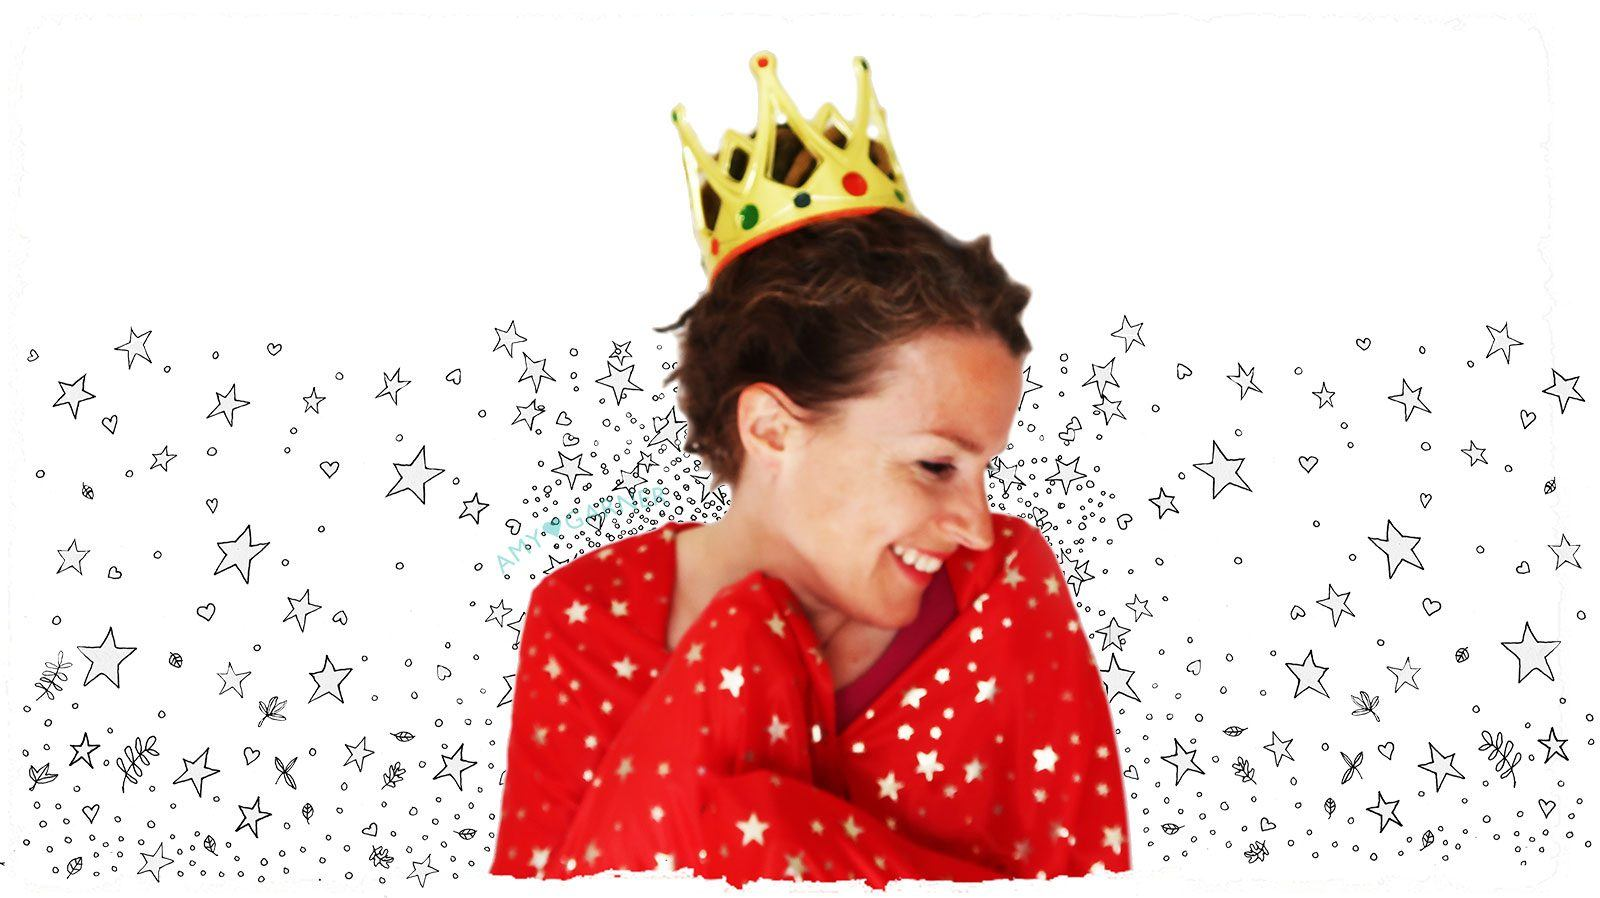 Amy wearing crown with stars – about Amy